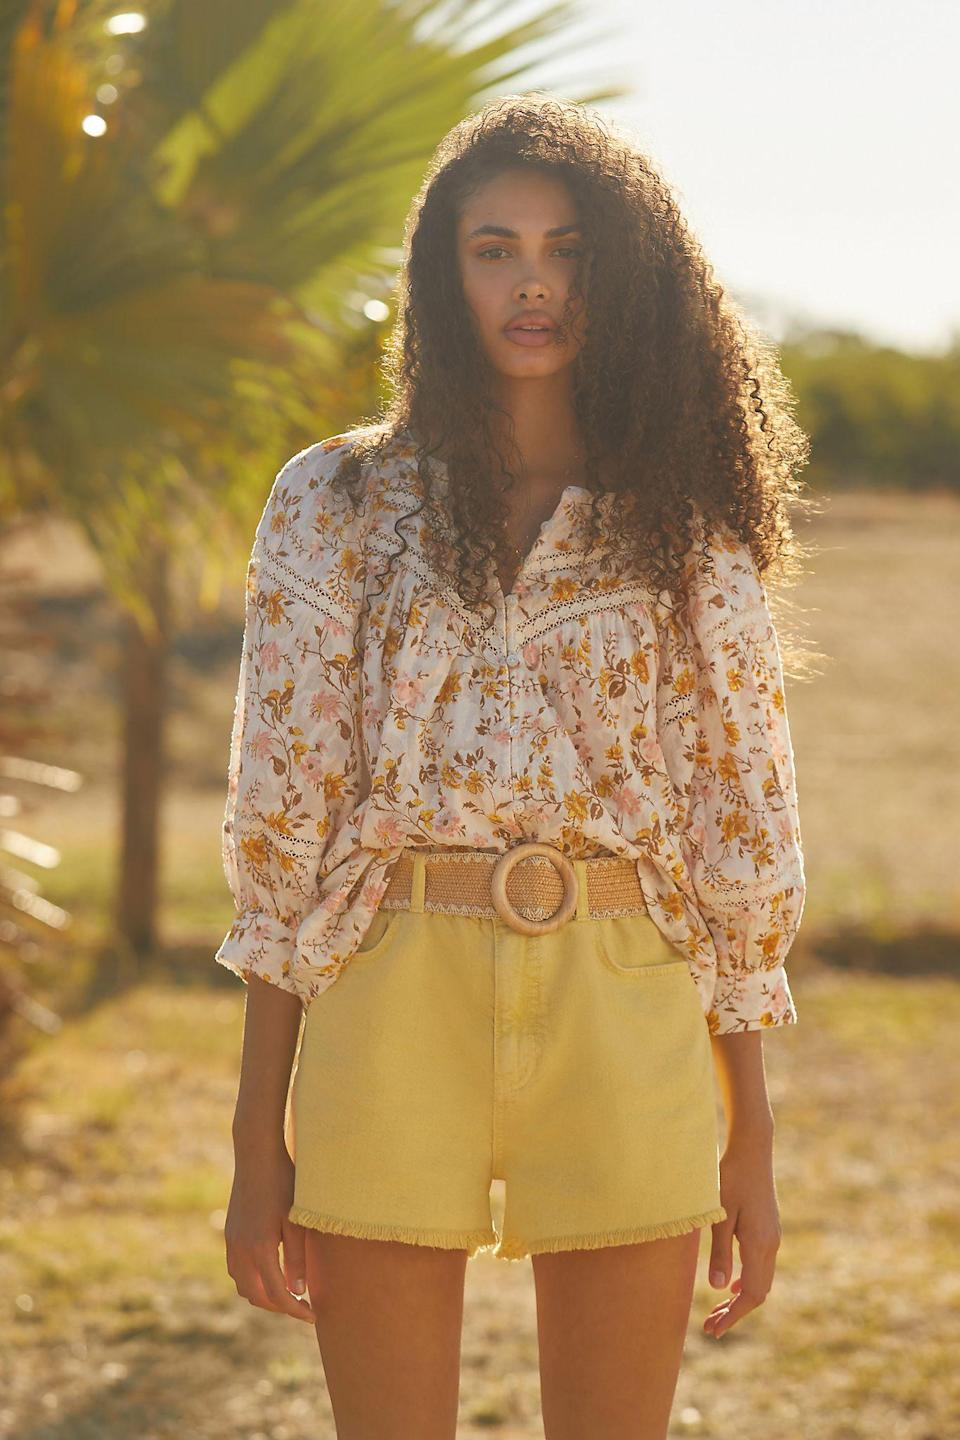 """<br><br><strong>Anthropologie</strong> Harmony Lace Peasant Blouse, $, available at <a href=""""https://go.skimresources.com/?id=30283X879131&url=https%3A%2F%2Fwww.anthropologie.com%2Fshop%2Fharmony-lace-peasant-blouse"""" rel=""""nofollow noopener"""" target=""""_blank"""" data-ylk=""""slk:Anthropologie"""" class=""""link rapid-noclick-resp"""">Anthropologie</a>"""